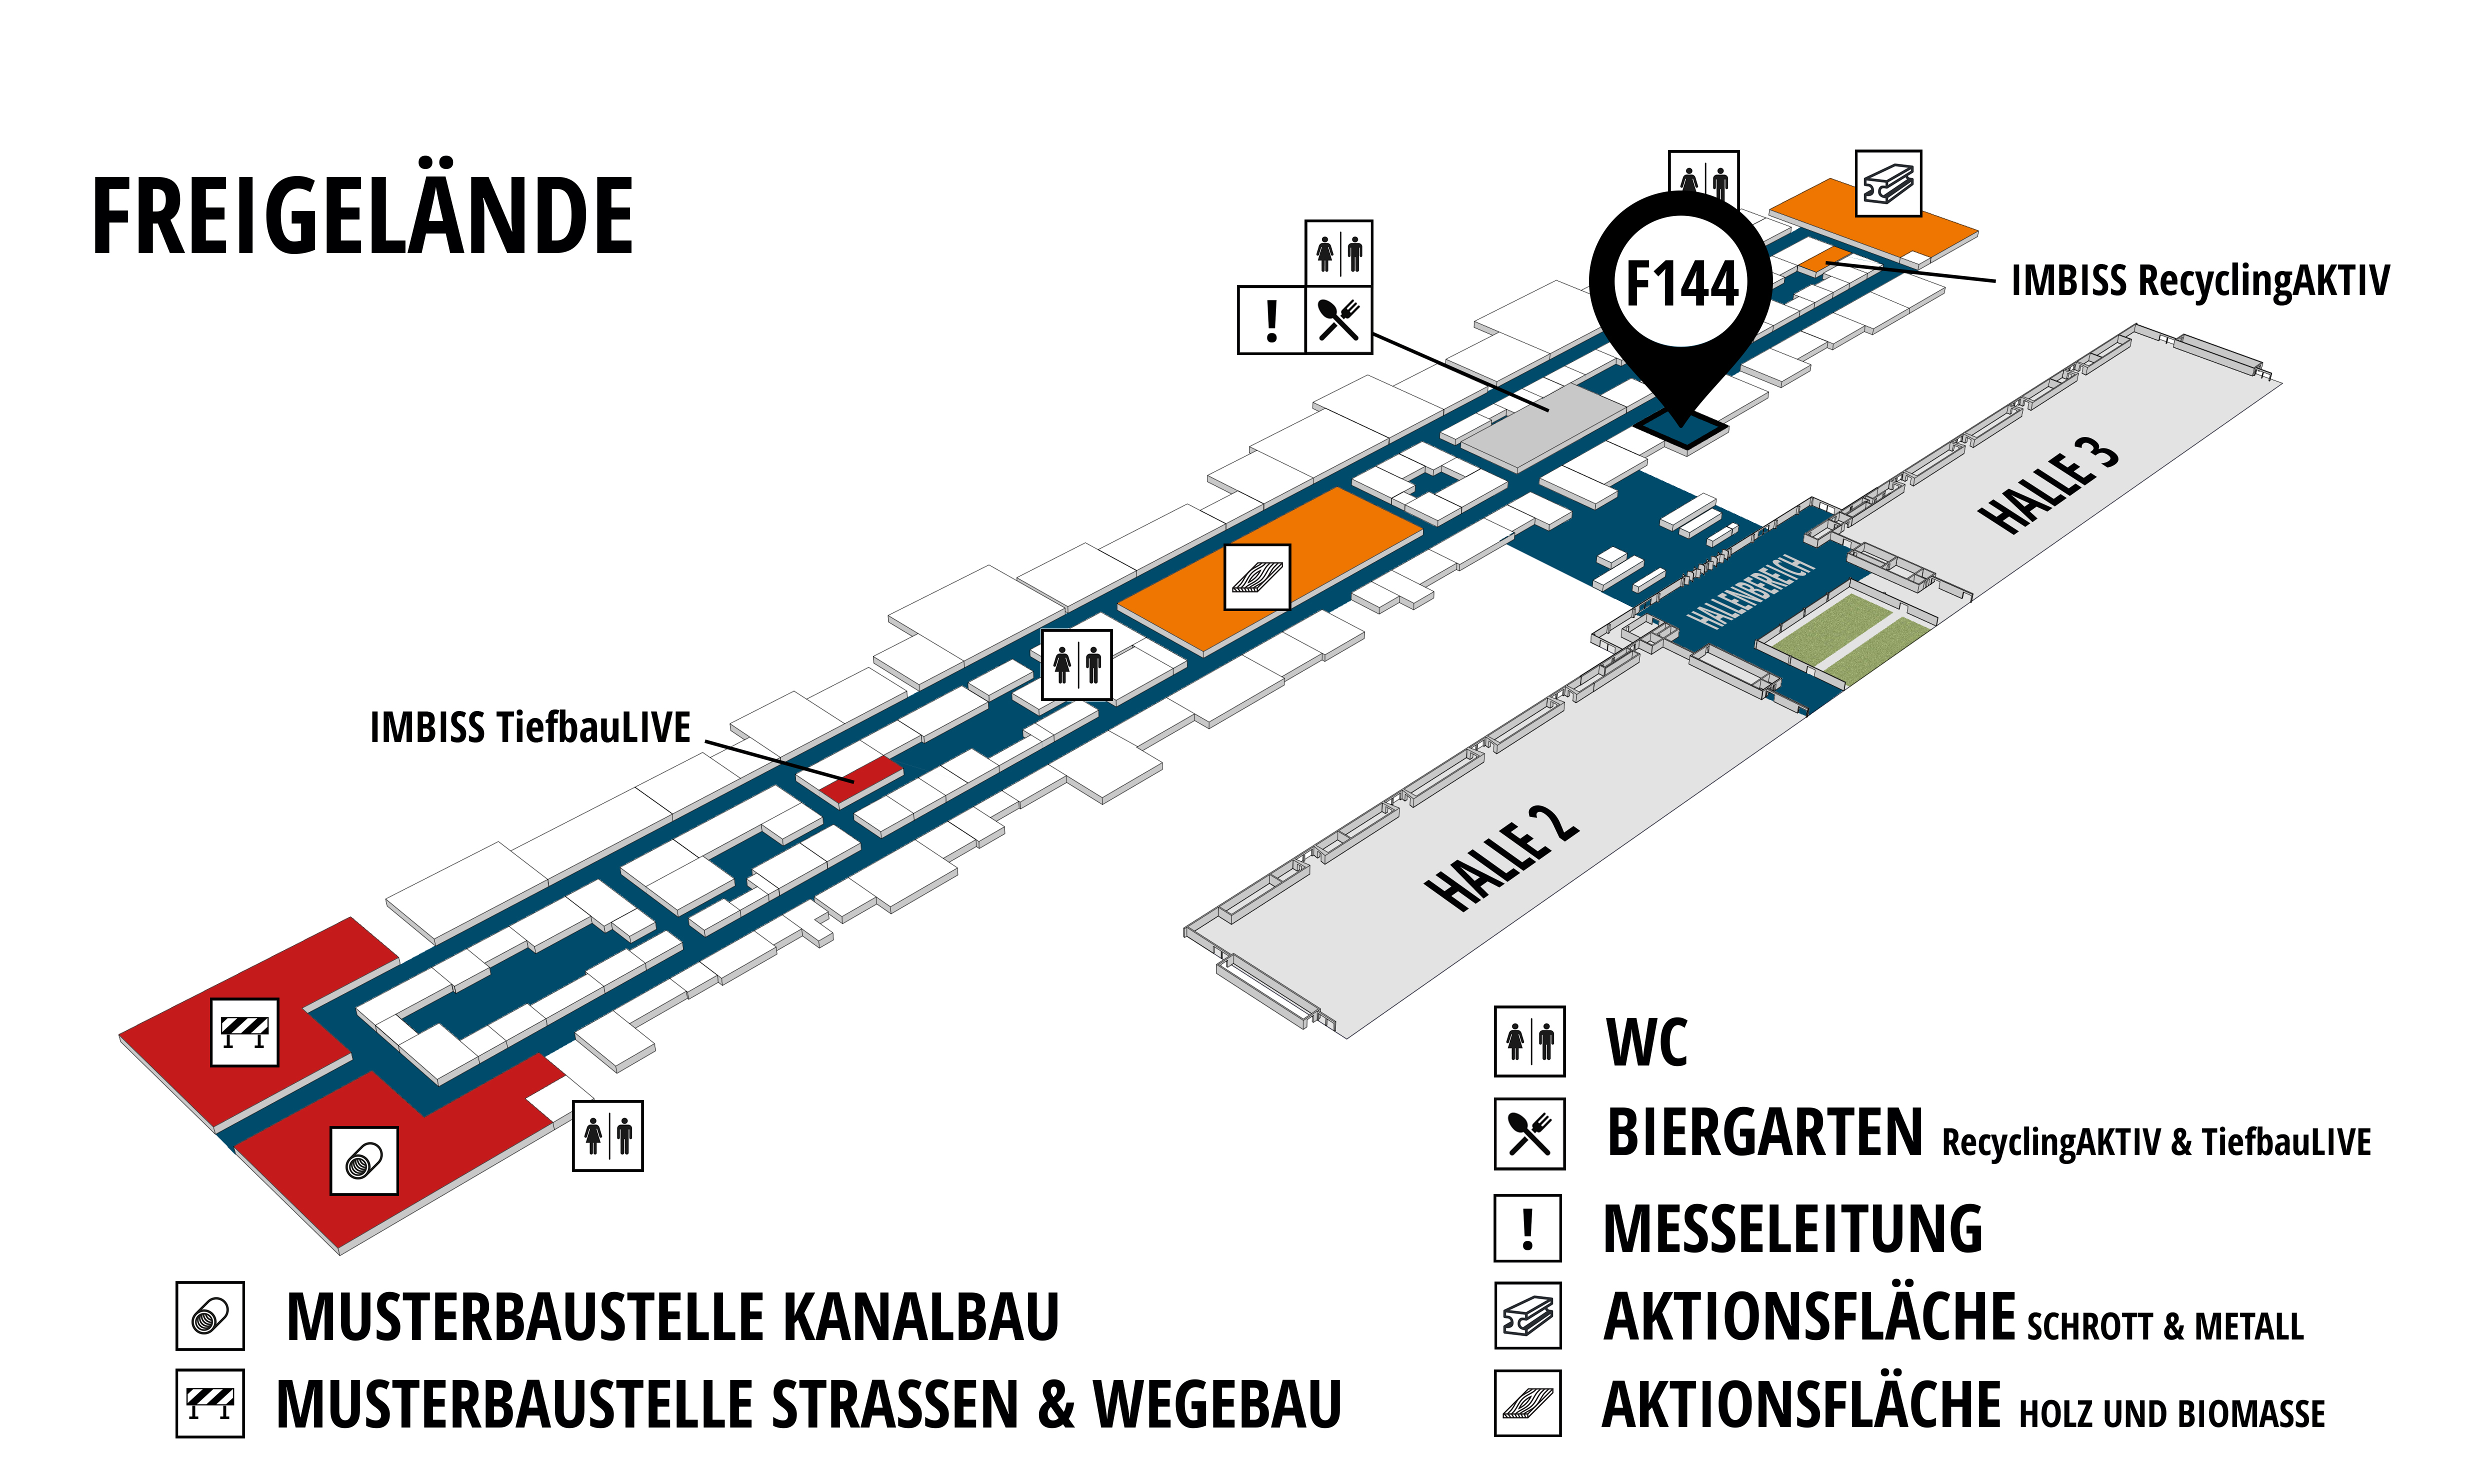 RecyclingAKTIV & TiefbauLIVE 2019. The Demonstration Trade Fairs ||Demonstration trade fair for waste removal and recycling. Demonstration trade fair for road construction and civil engineering. hall map (Outdoor area (east)): stand F144